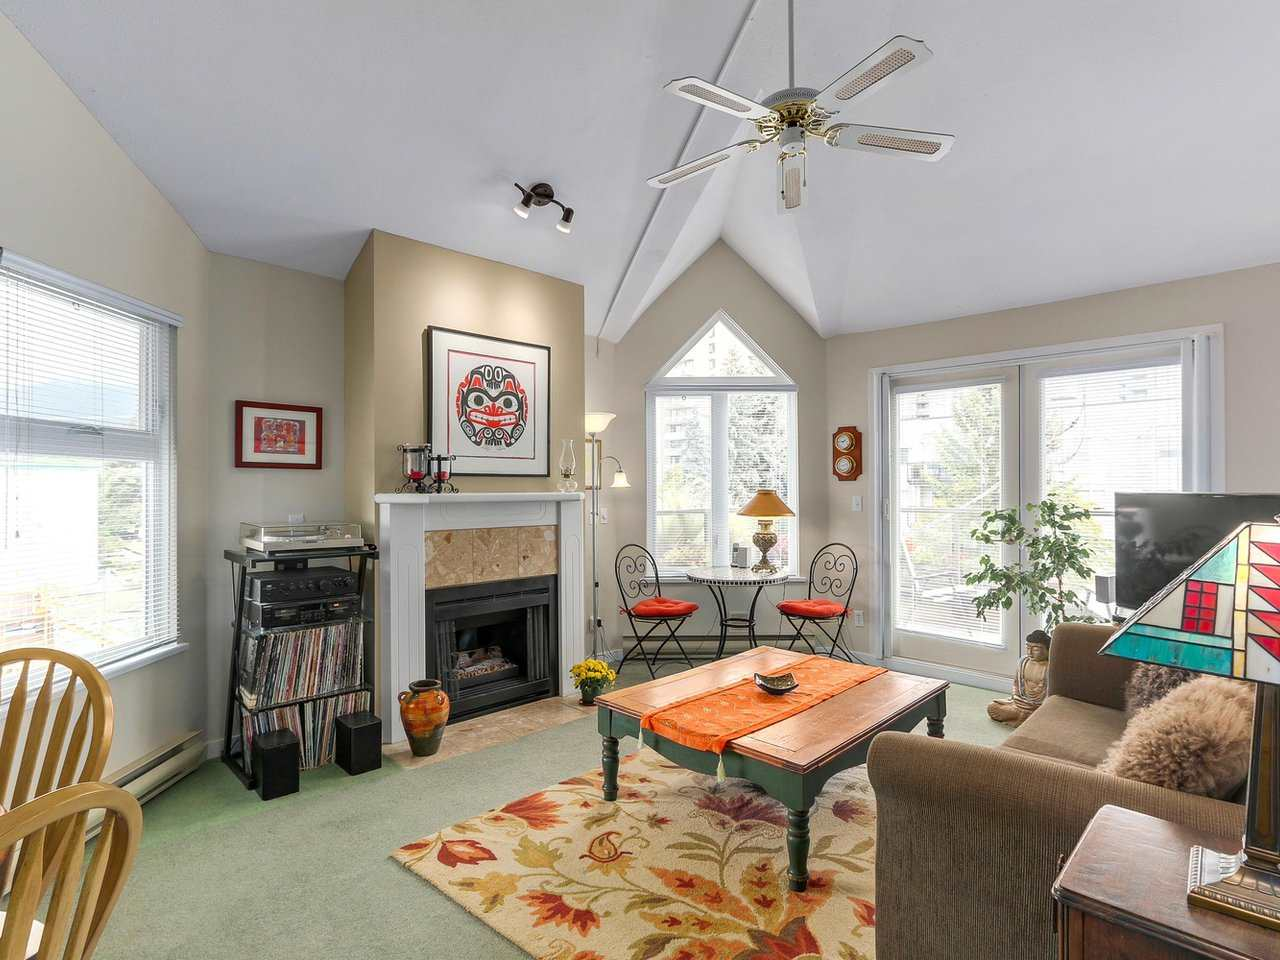 Buliding: 1535 Chesterfield Avenue, North Vancouver, BC